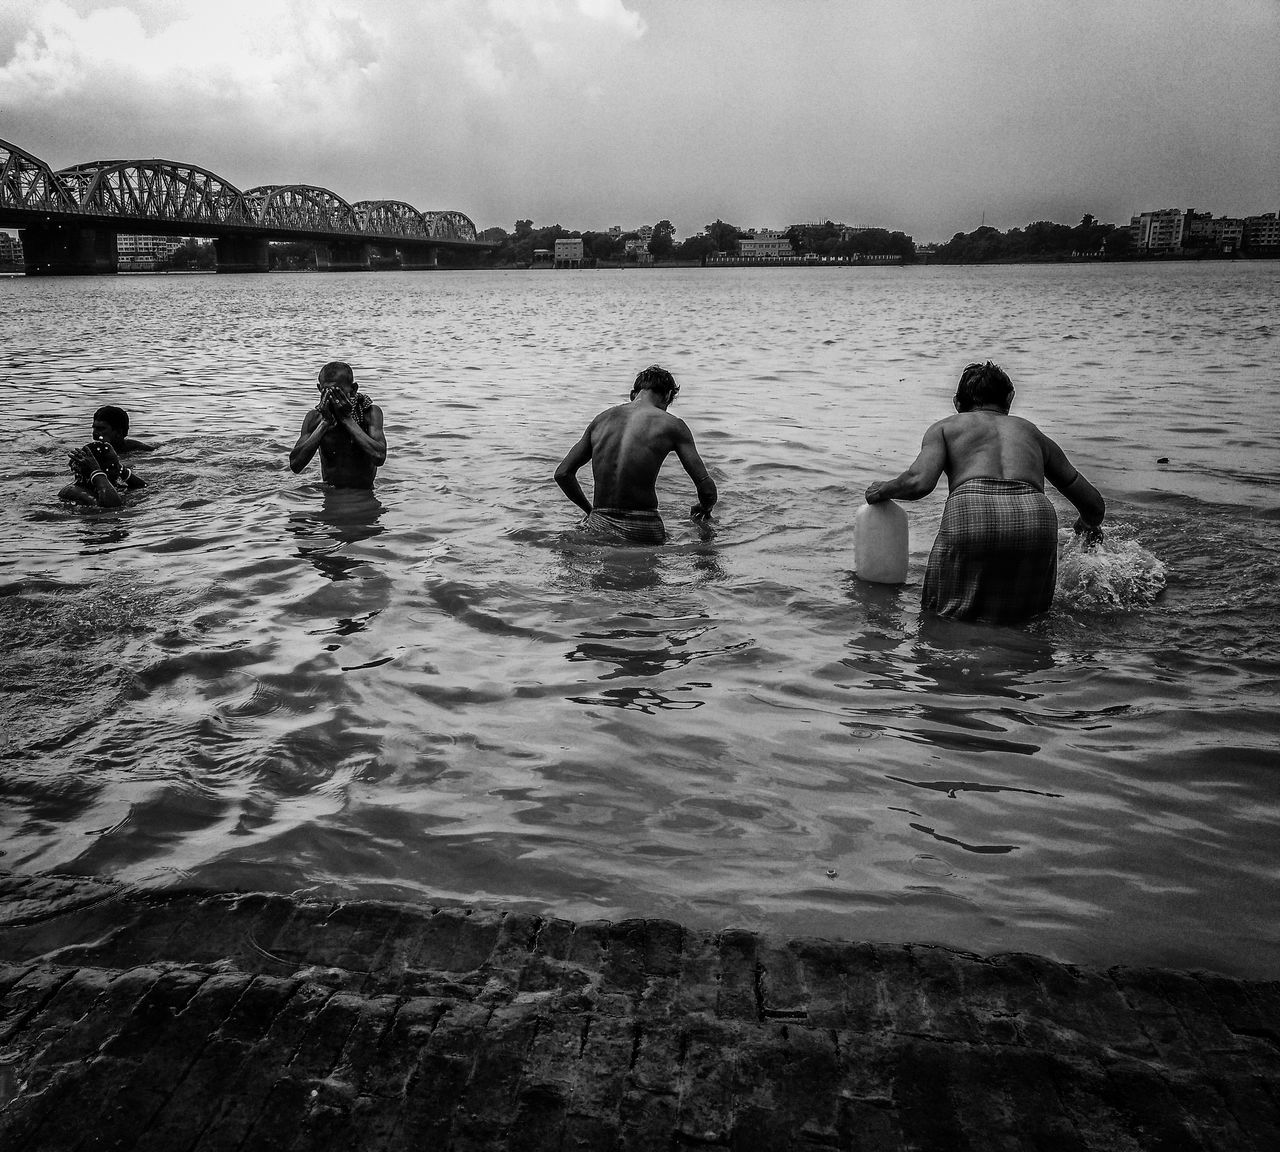 Men never commit evil so fully and joyfully as when they do it for religious convictions - ✍Blaise Pascal✍ People bathing in Holy Ganges and throwing other relegious things, in hope of redemption and making it not so Holy😑😑.. It's not that i don't believe in god or something, it's just that i don't believe in the god we have created. (PS- captured by mobile) Punctum Photography Monochrome Photography Dakshineswar Kali Temple Kolkata Blackandwhite Black And White Bw Ganga River Ganga Ghat Ganges Ganges River People Watching People Bathing Bathing In Ganga Bathing In River EyeEm Best Shots EyeEm Best Shots - Nature Nature Photography Human Men Still Life Exceptional Photographs EyeEm Best Shots - Black + White Thames River Thames